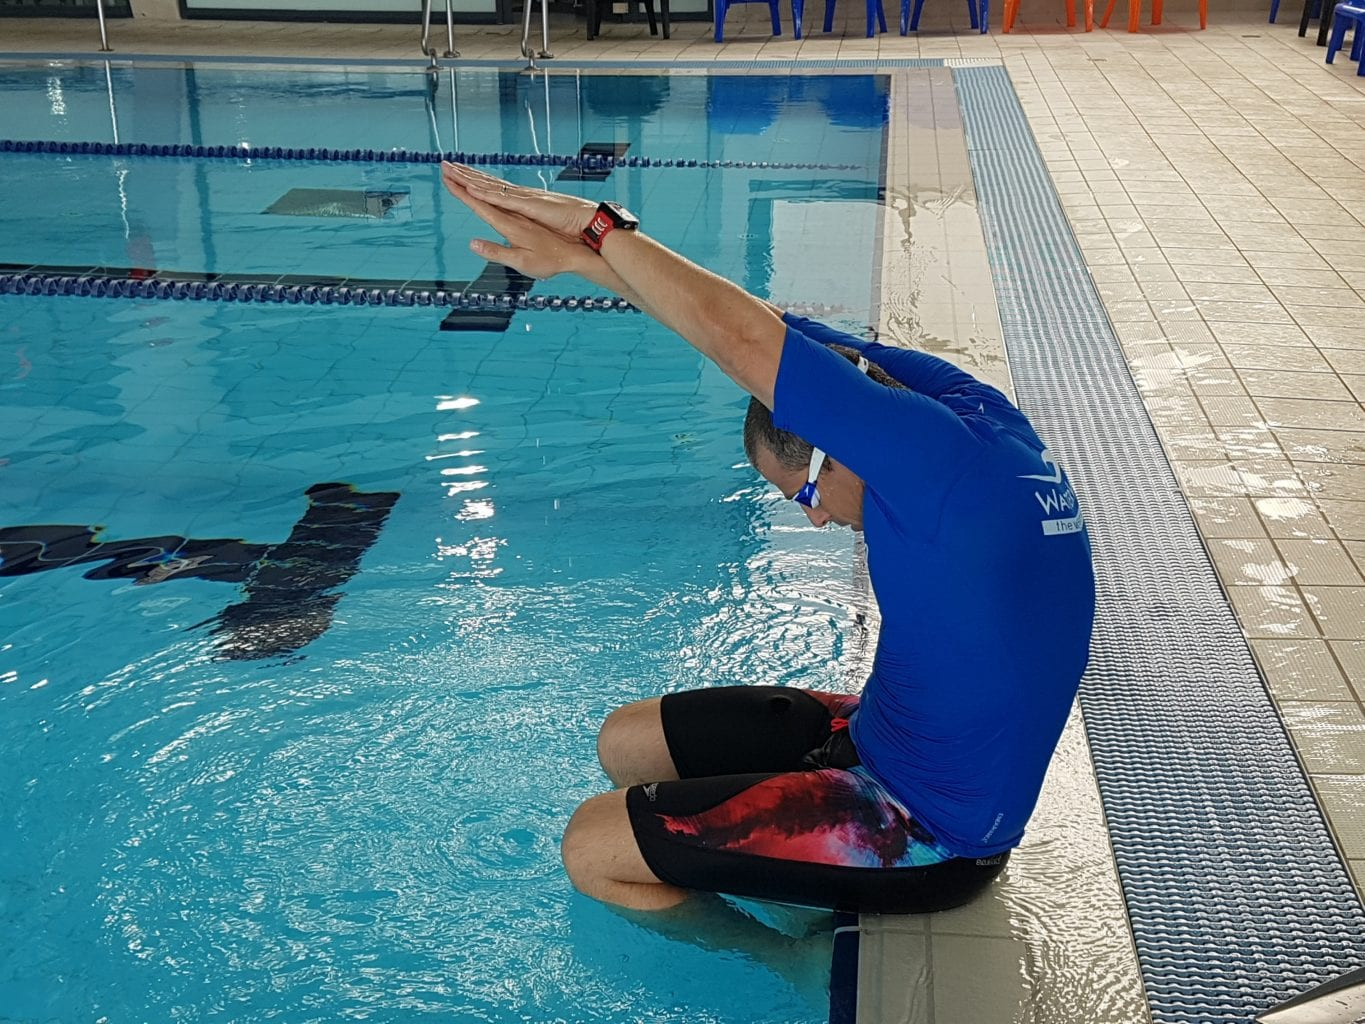 10 steps to dive like a pro for beginners west swimming technique